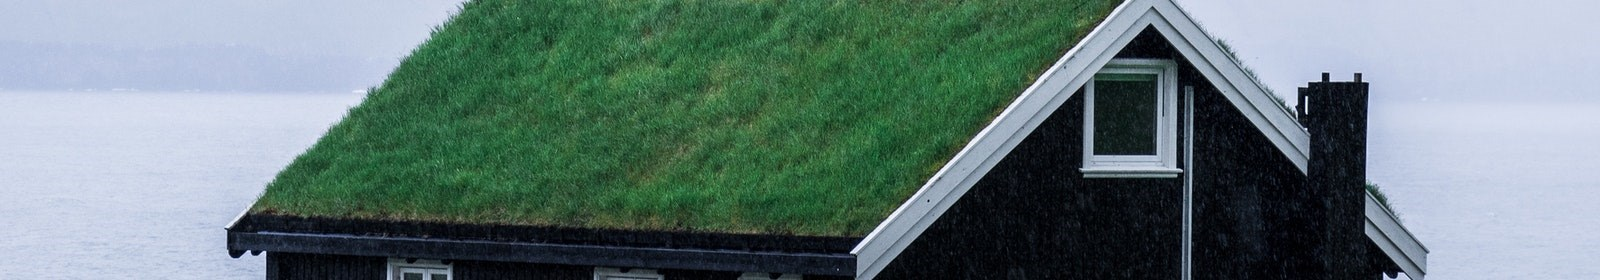 How to Maintain a Thatched Roof the Right Way